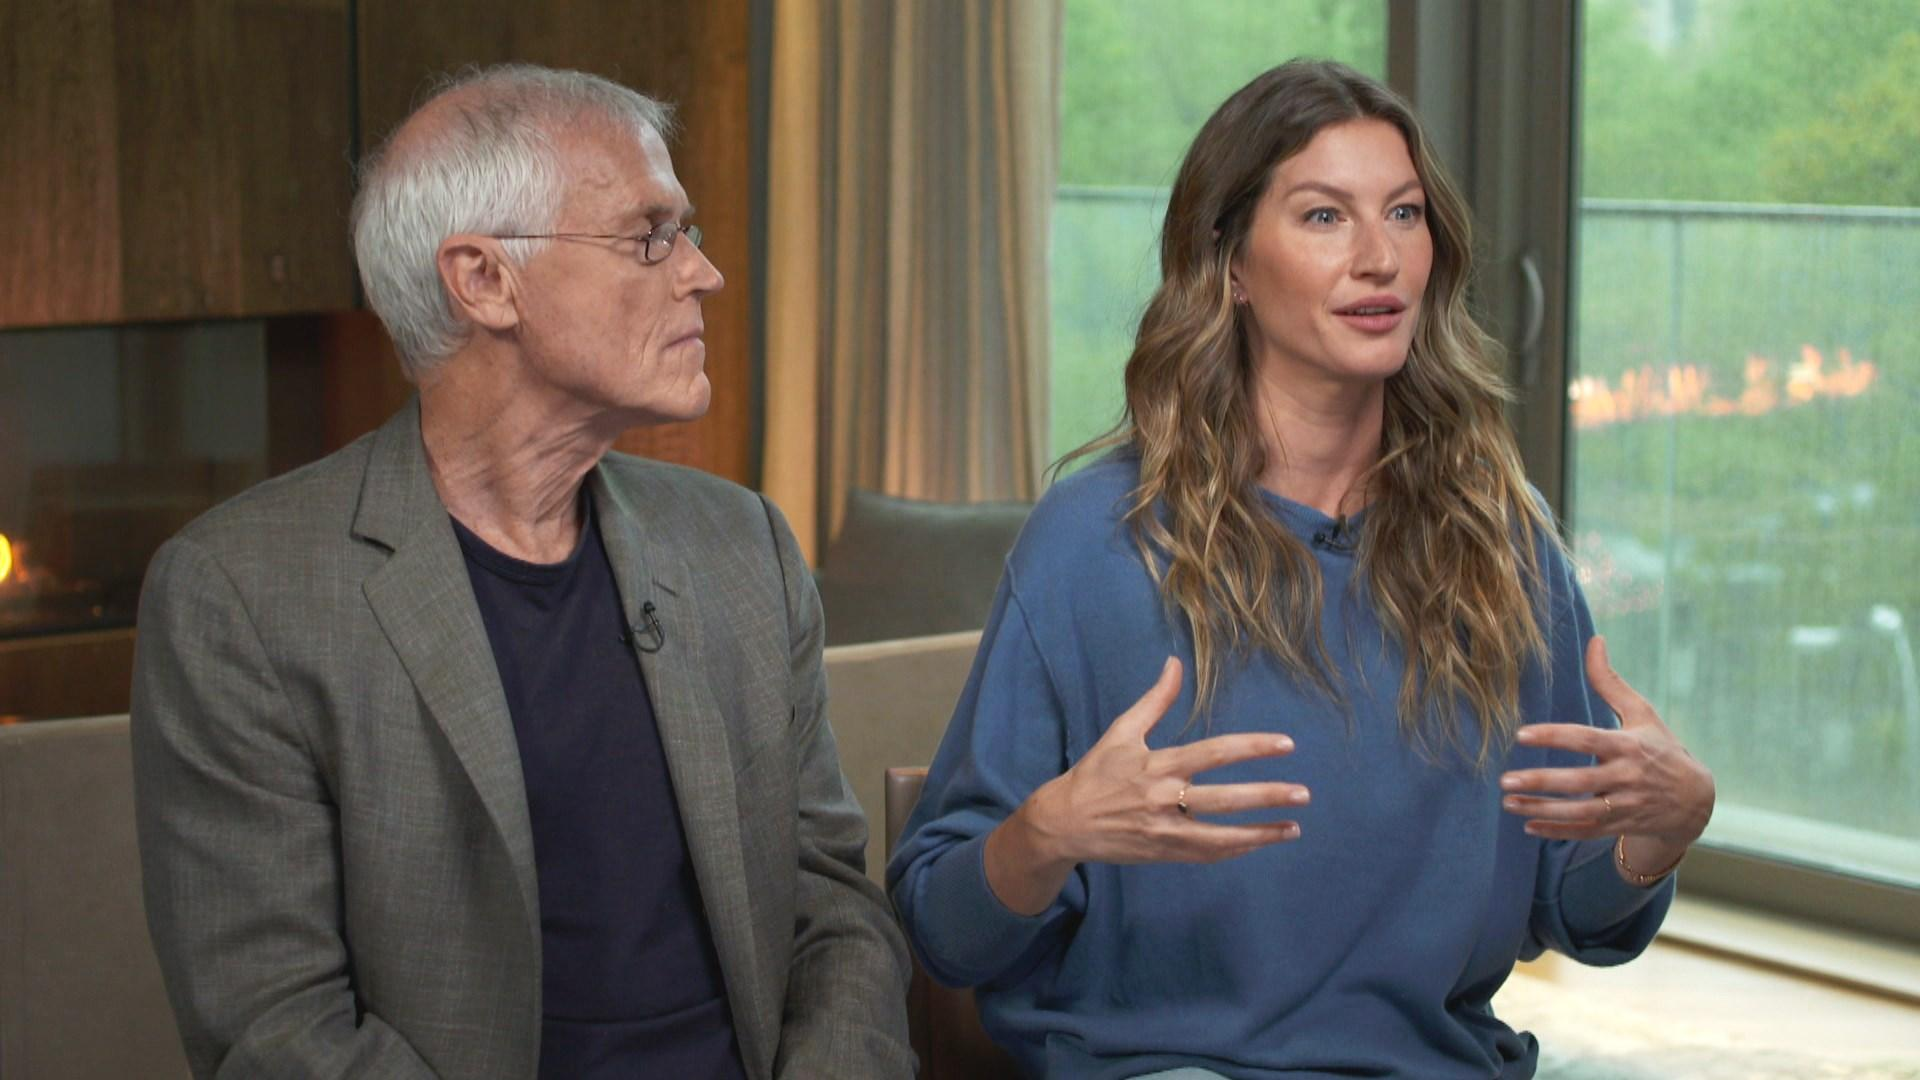 Gisele Bündchen teams up with Paul Hawken to advocate for the